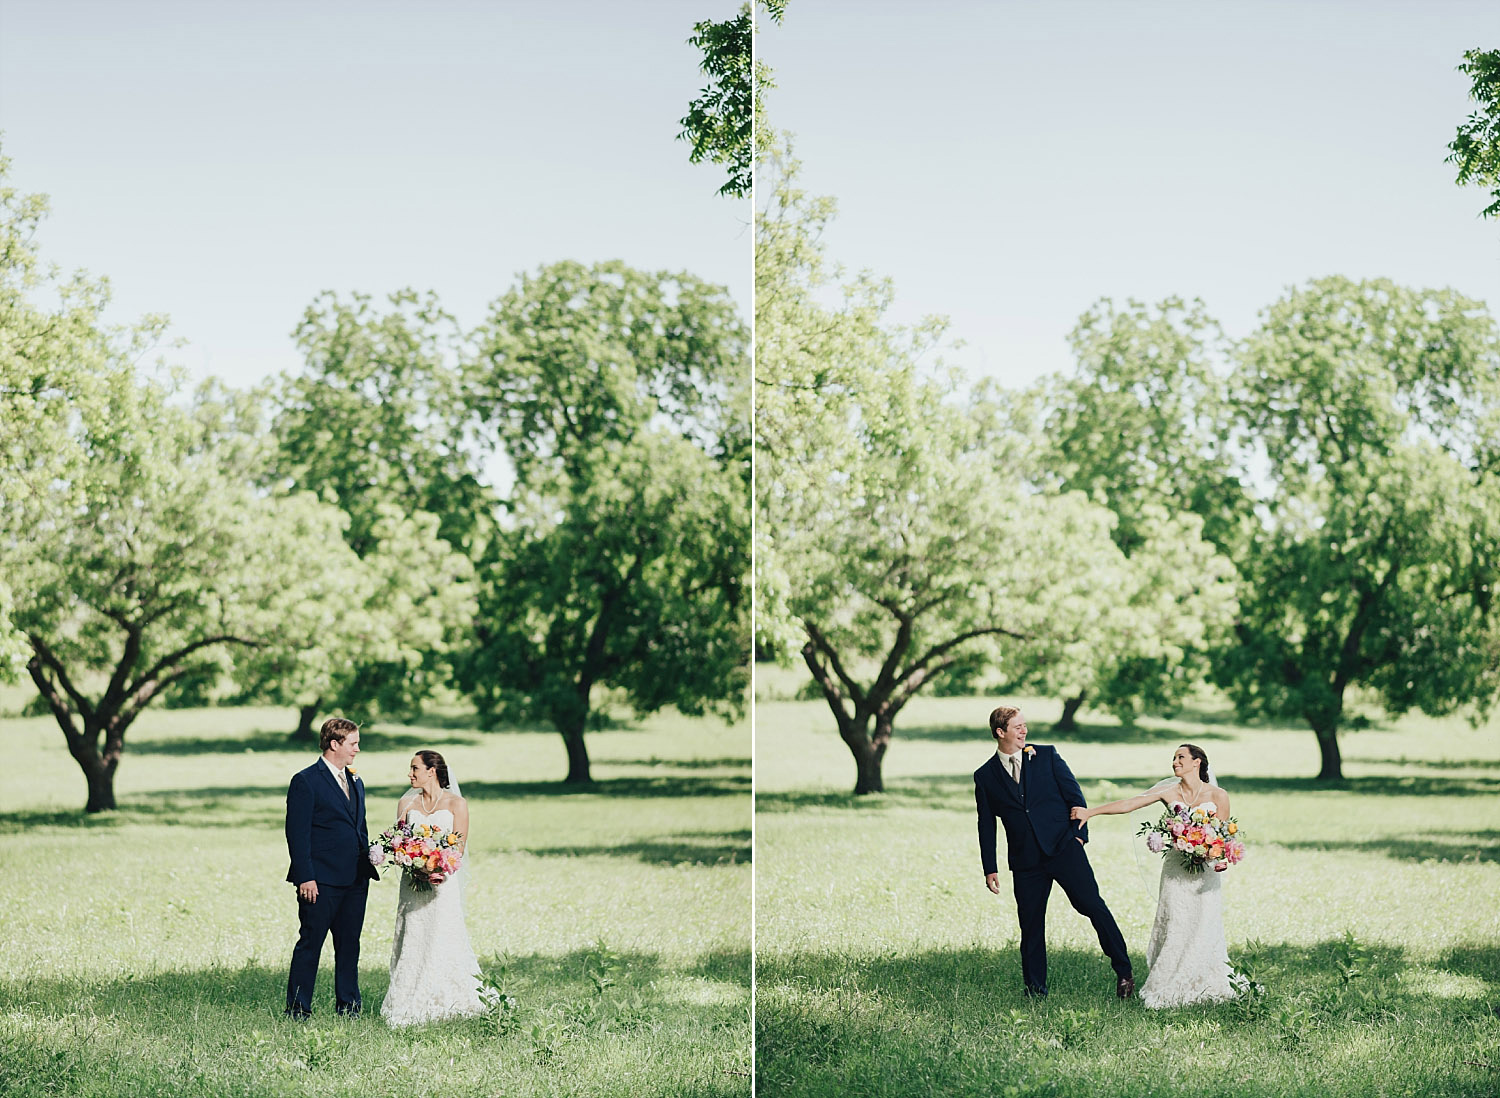 The Orchard Azle wedding bride and groom outdoors in grass